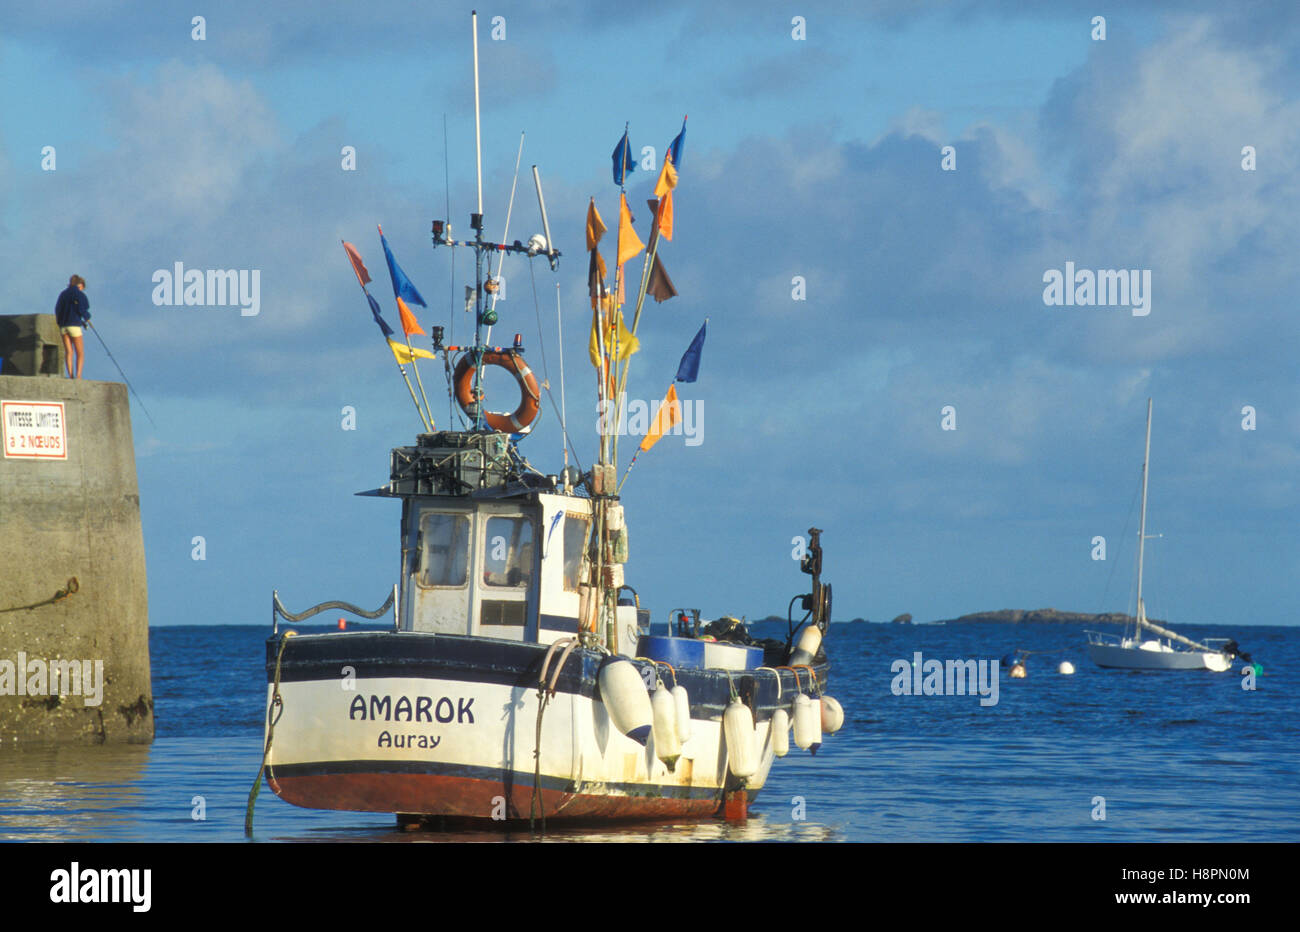 Fishing cutter in the harbor of Portivy, ebb, drained, fishing industry, Quiberon, Brittany, France, Europe - Stock Image